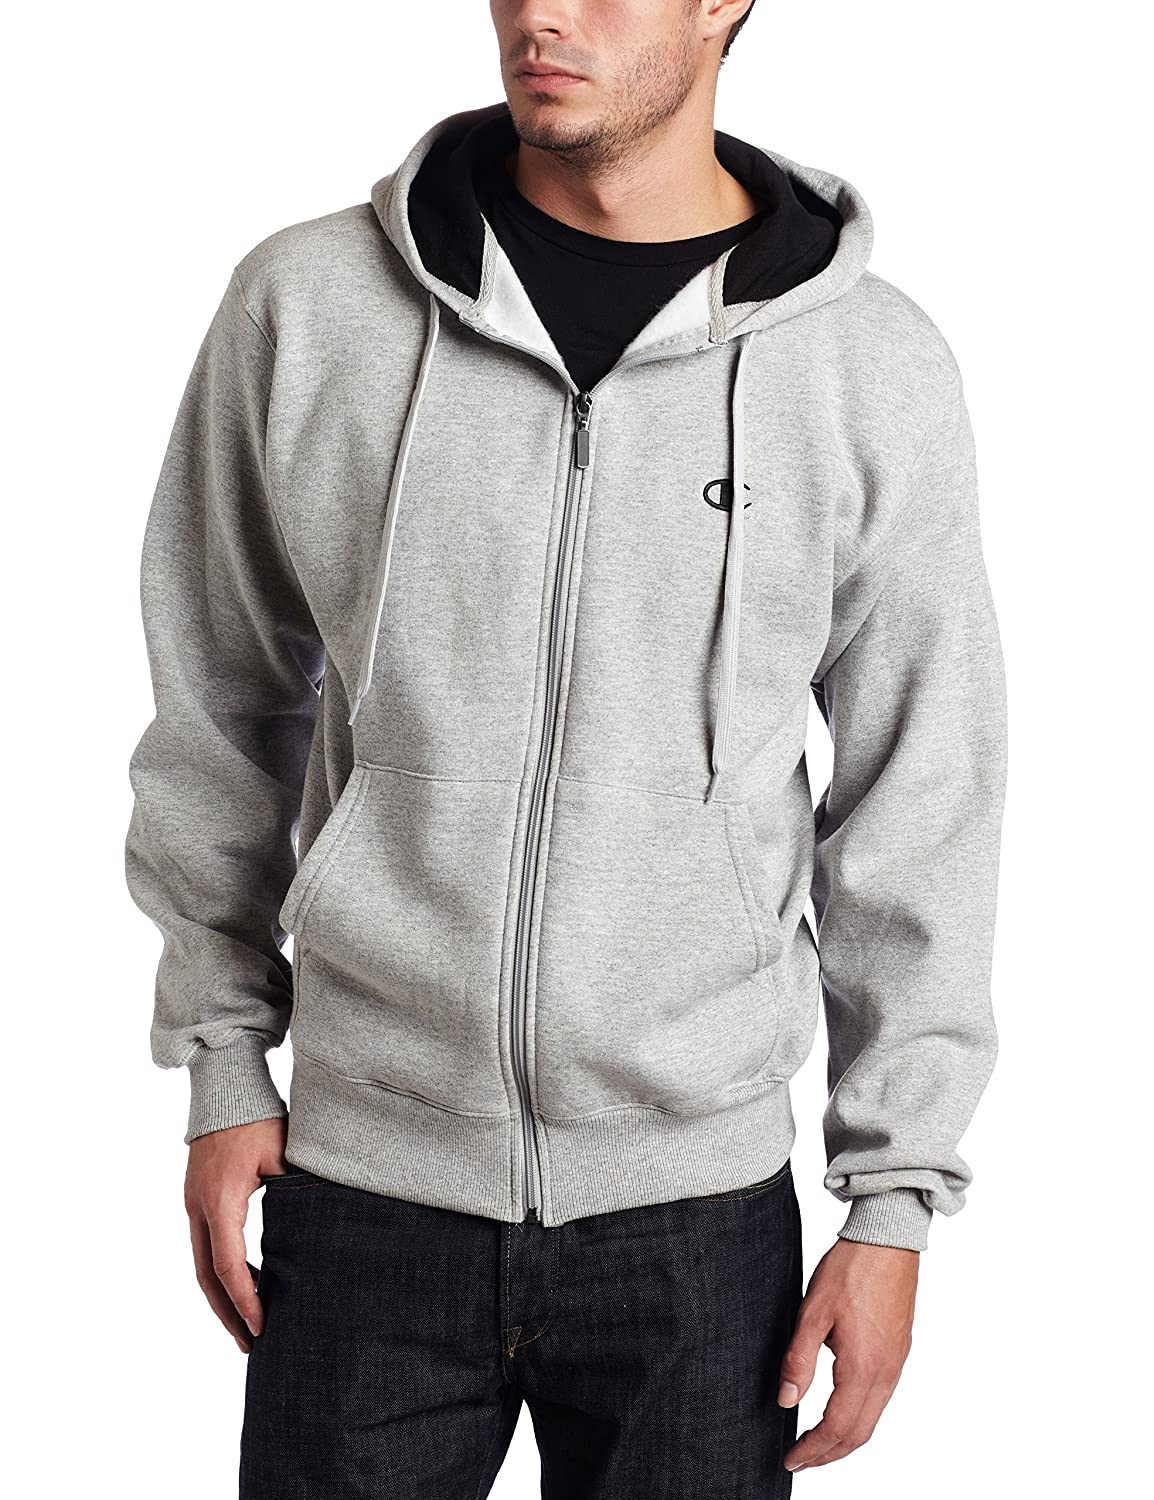 Champion Eco? Fleece Men`s Full-Zip Hoodie - Best-Seller!